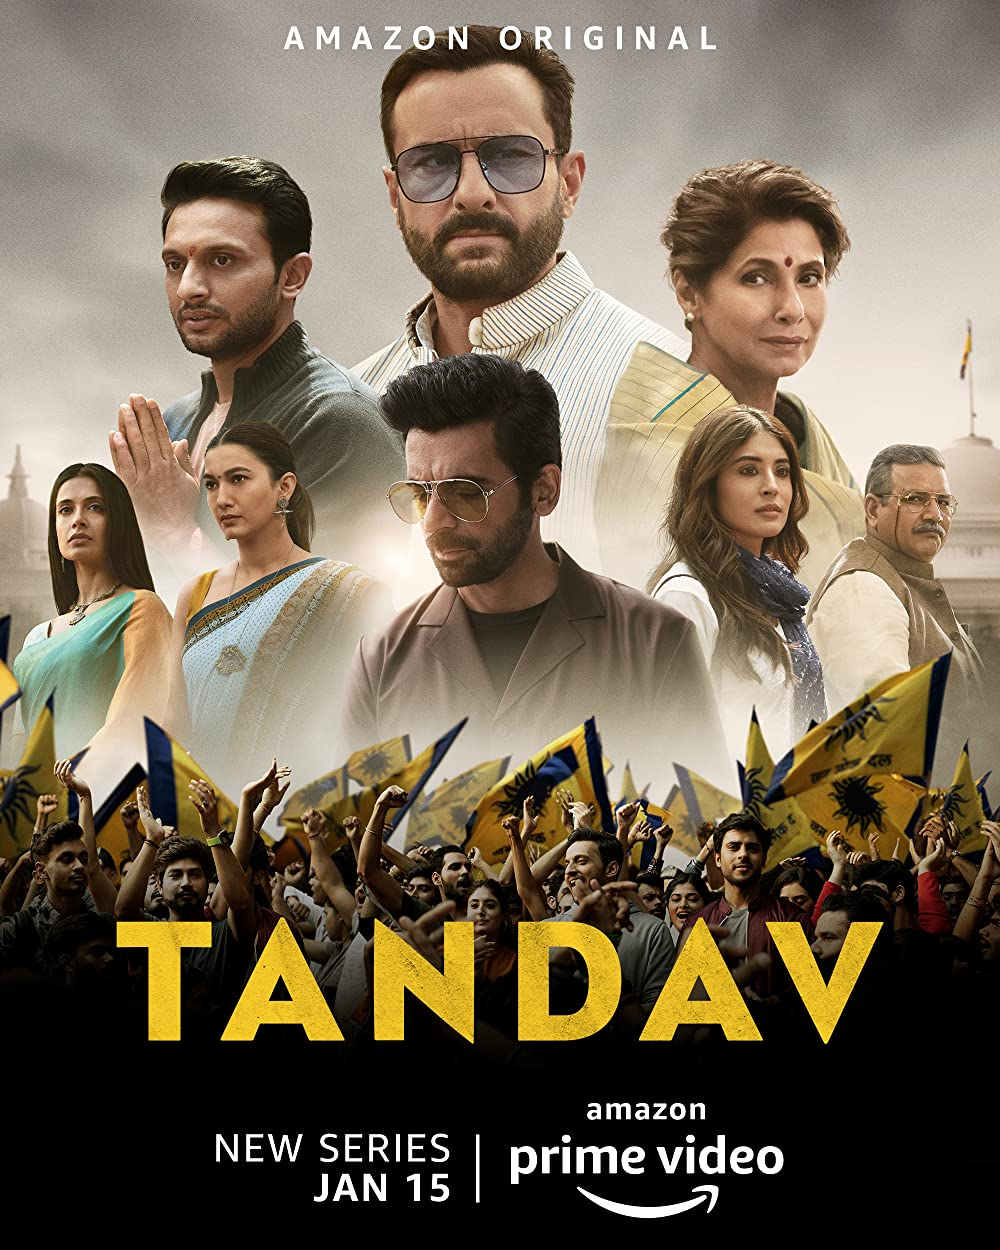 Tandav S01 2021 Hindi Amazon Original Web Series Official Trailer 1080p HDRip Free Download